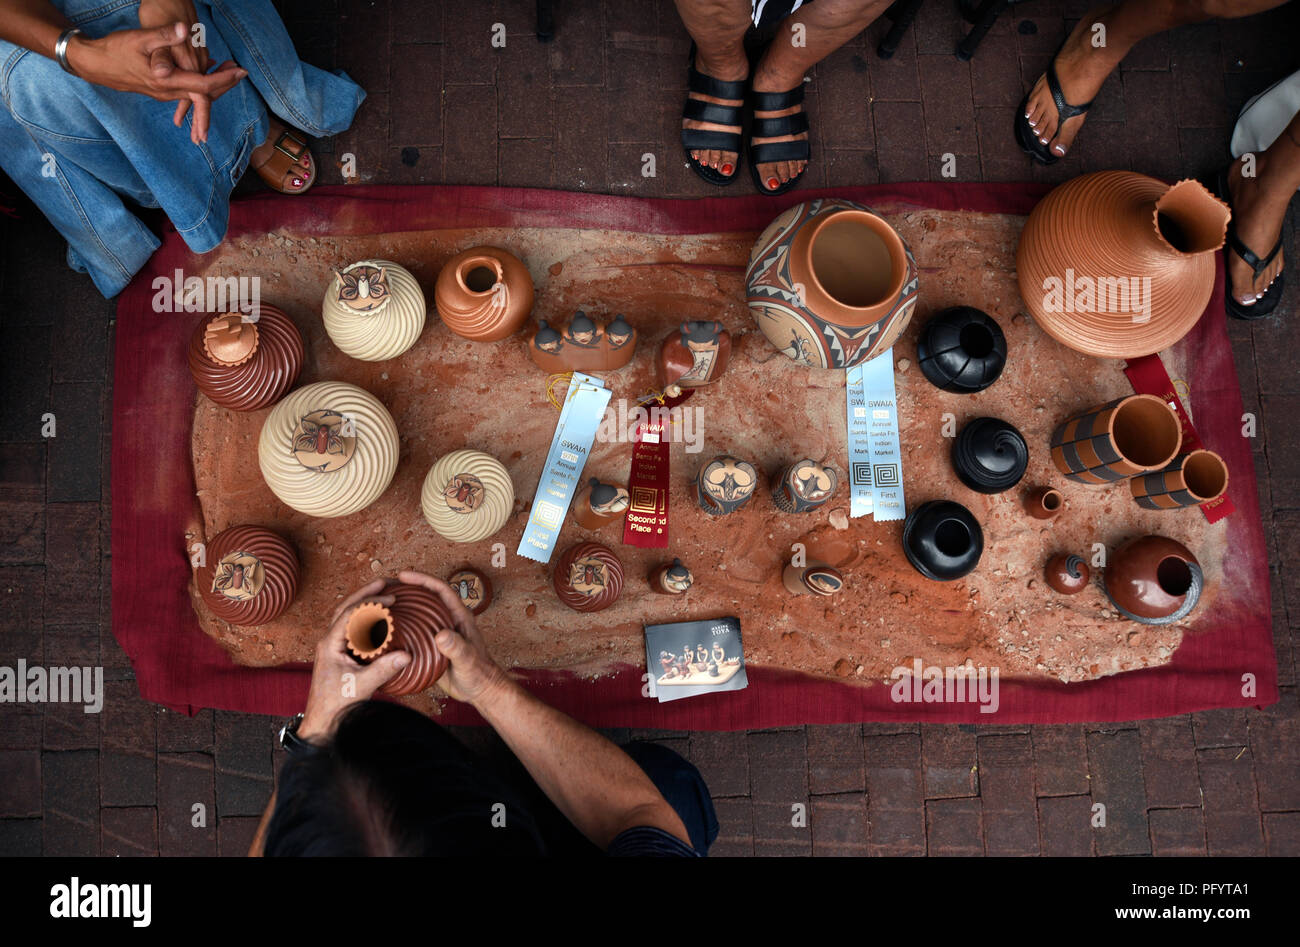 Native-American artists display and sell their clay pottery  at the Santa Fe Indian Market. - Stock Image